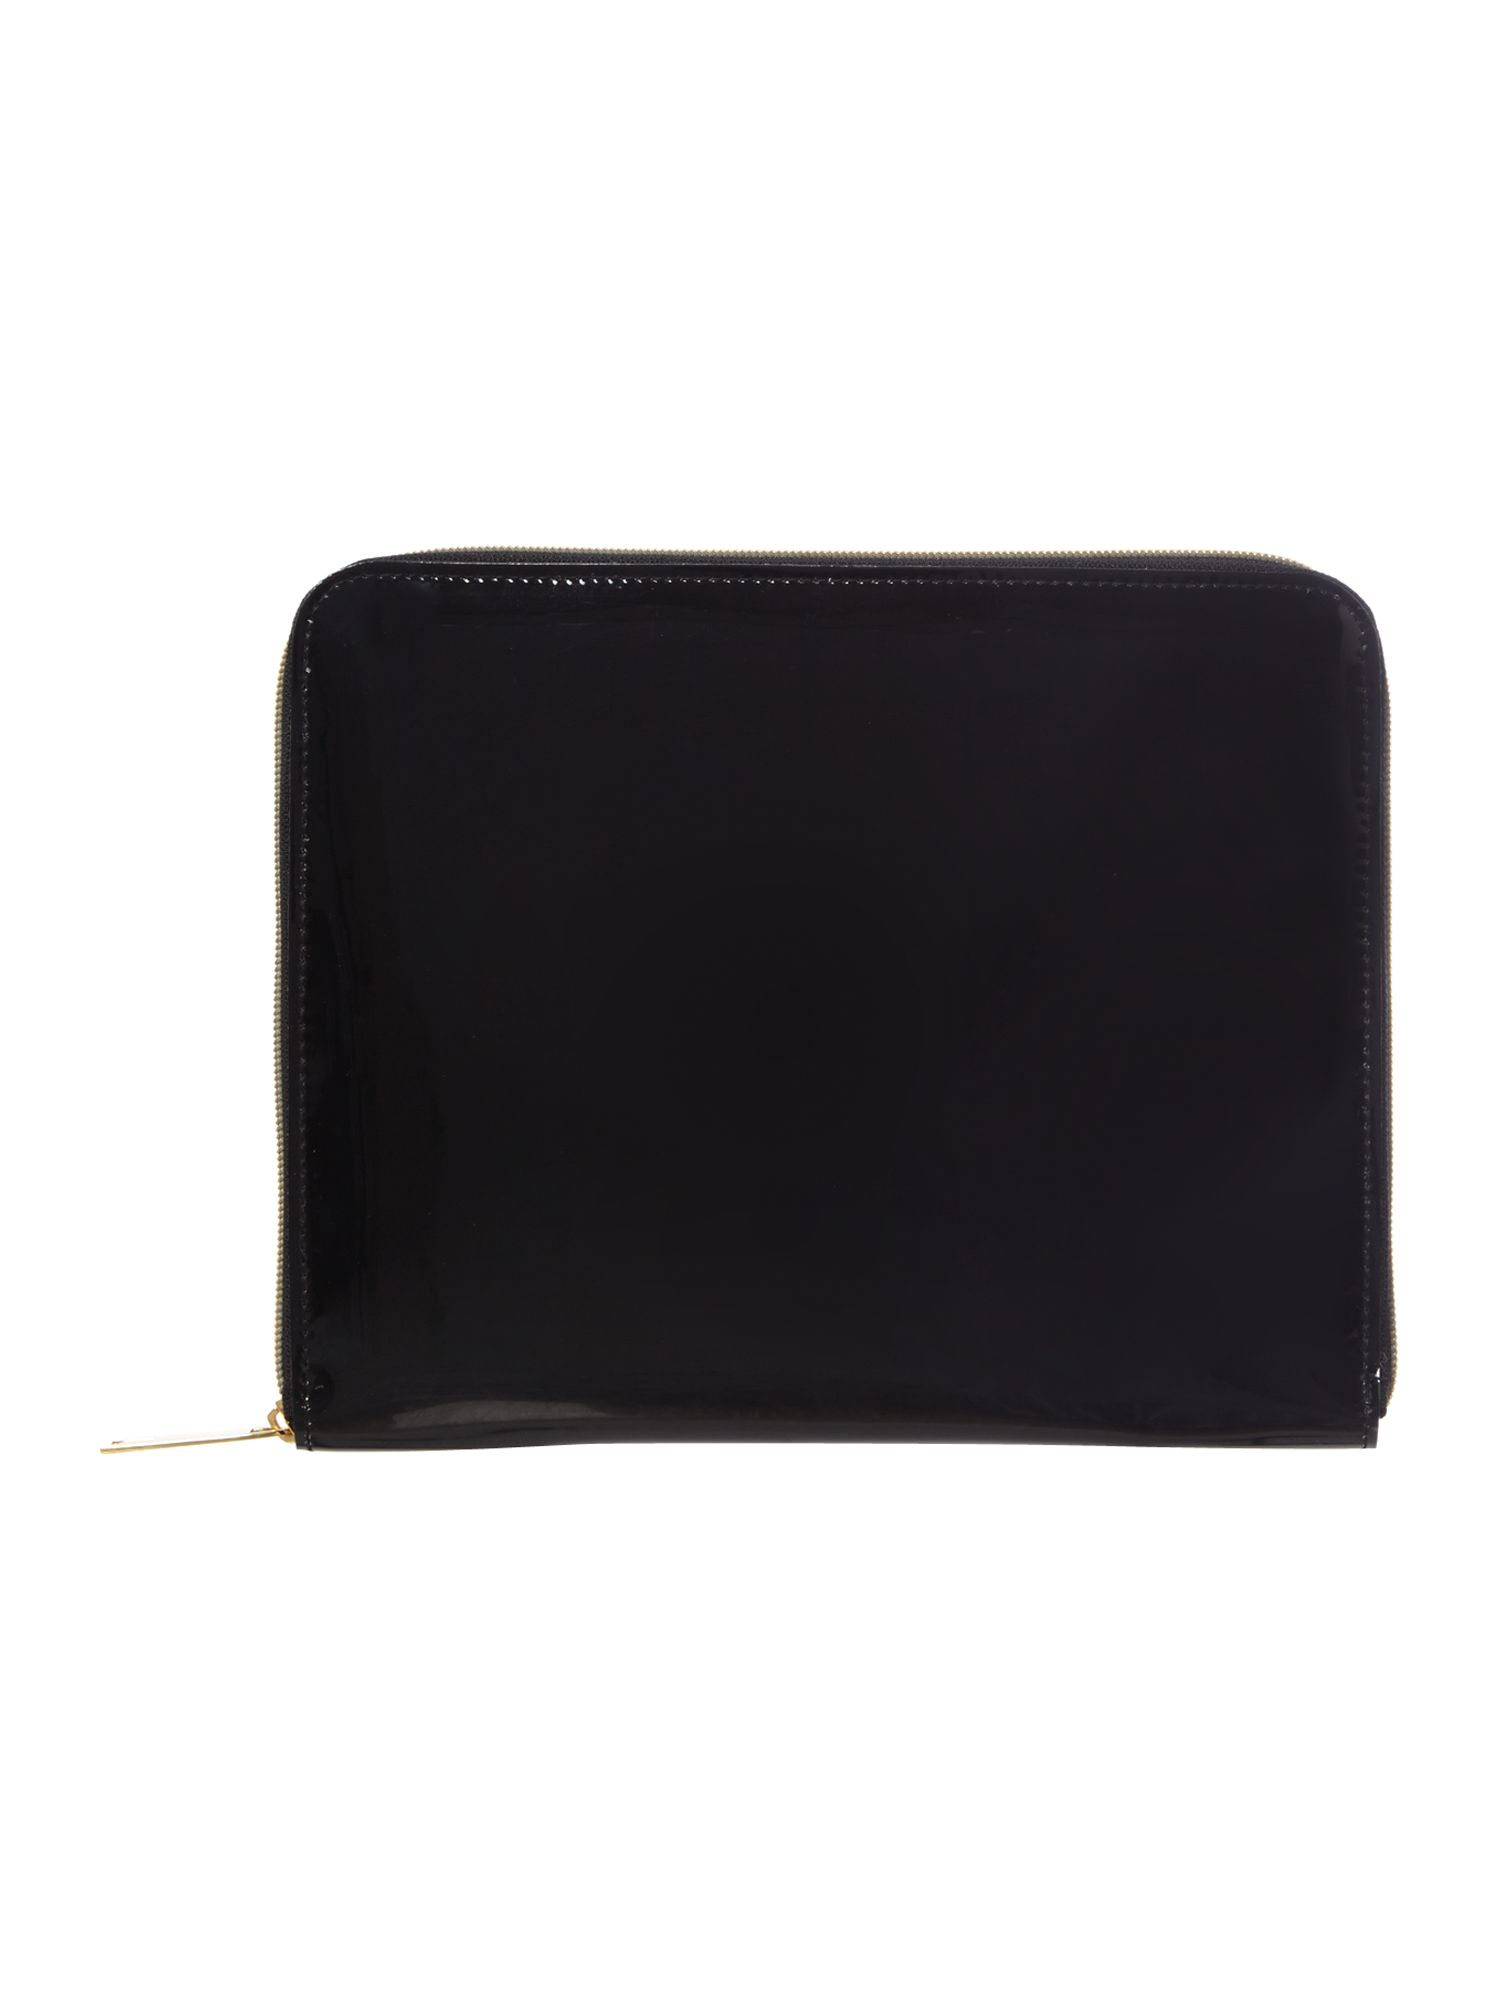 Large black iPad case